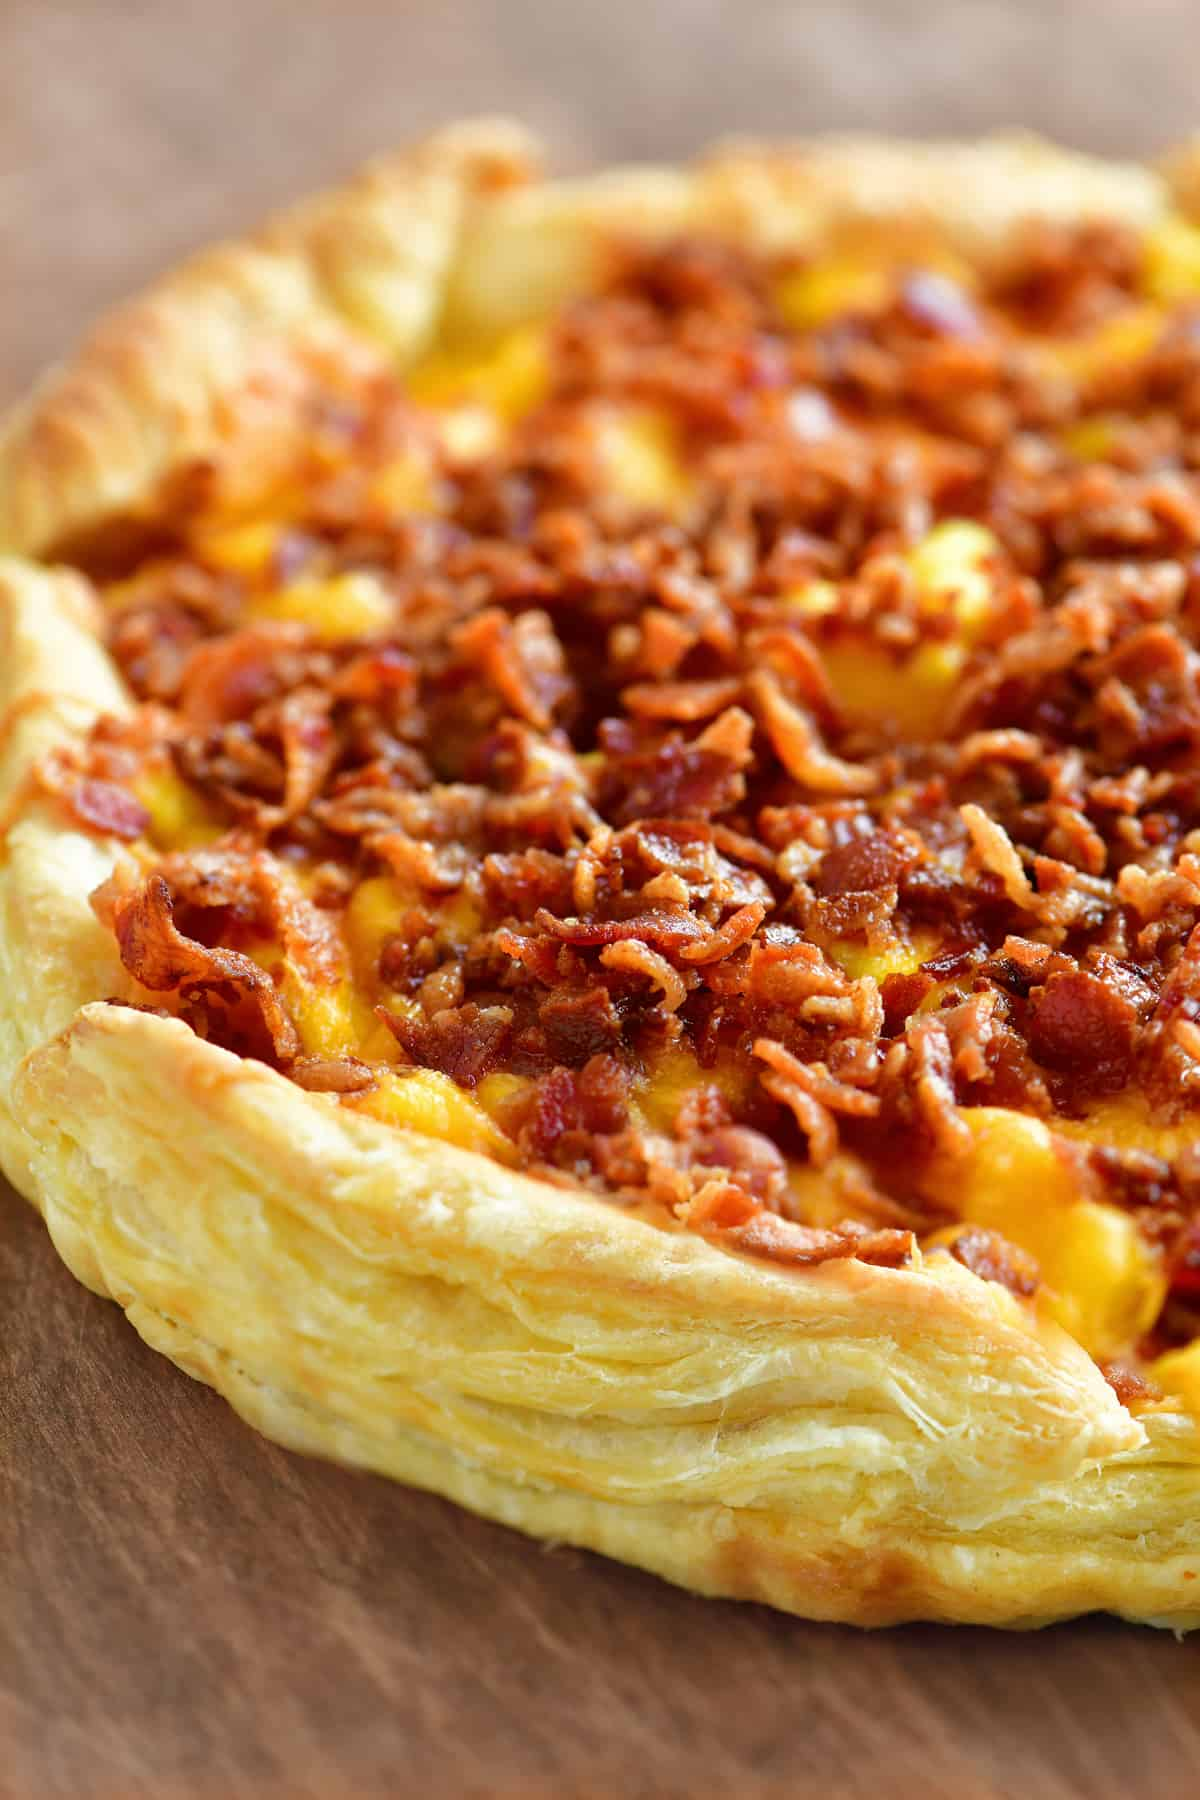 a close-up view of a delicious breakfast pizza